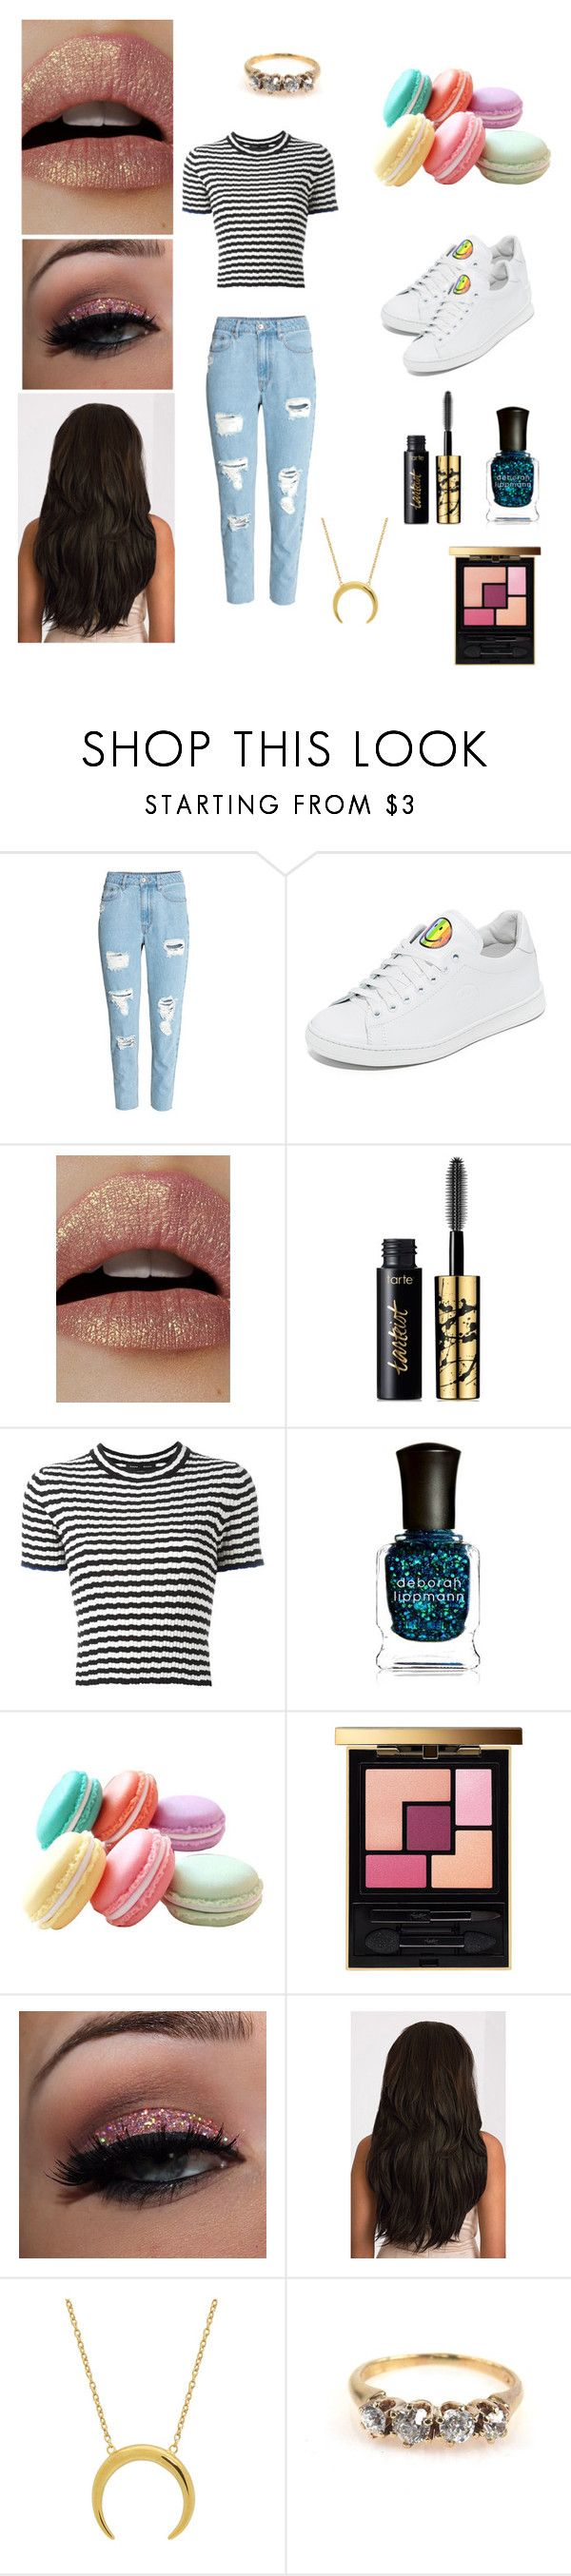 """First Day Of School"" by echey on Polyvore featuring H&M, Joshua's, Lime Crime, tarte, Proenza Schouler, Deborah Lippmann and Yves Saint Laurent"